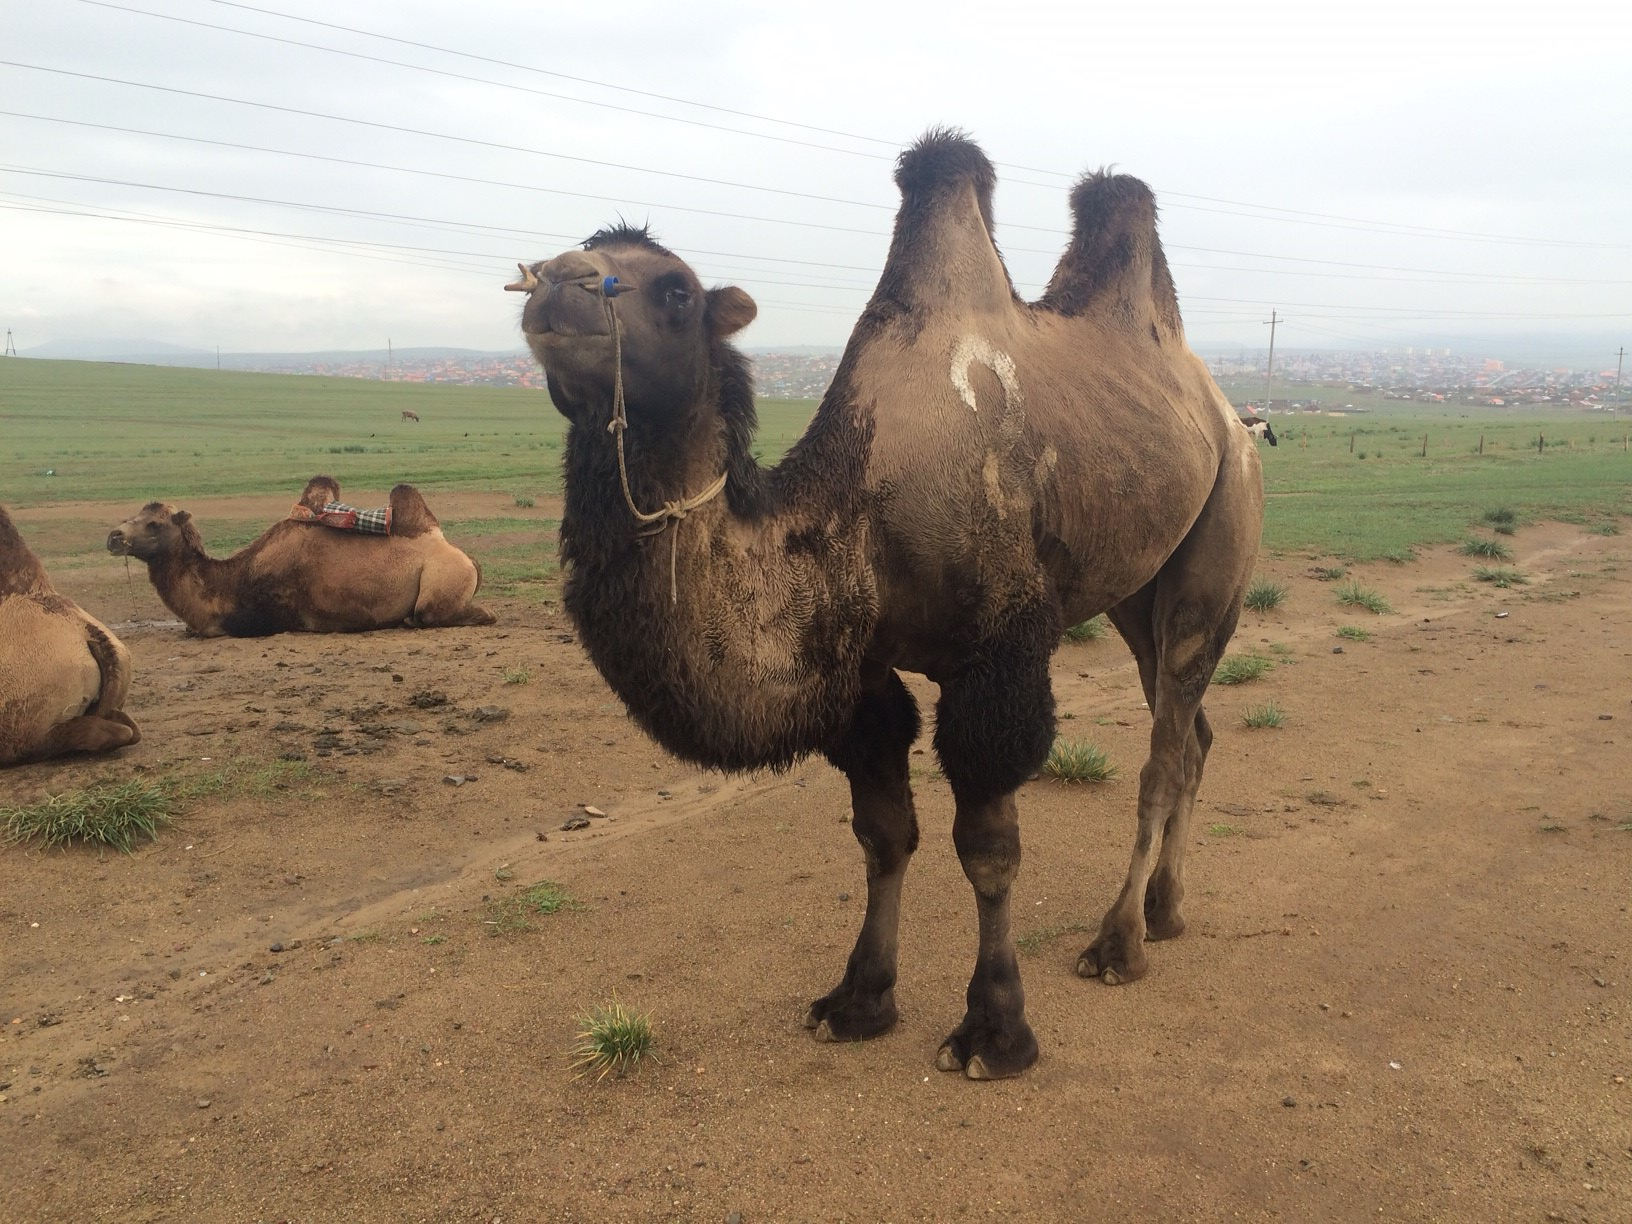 Image shows a two-humped Bactrian camel